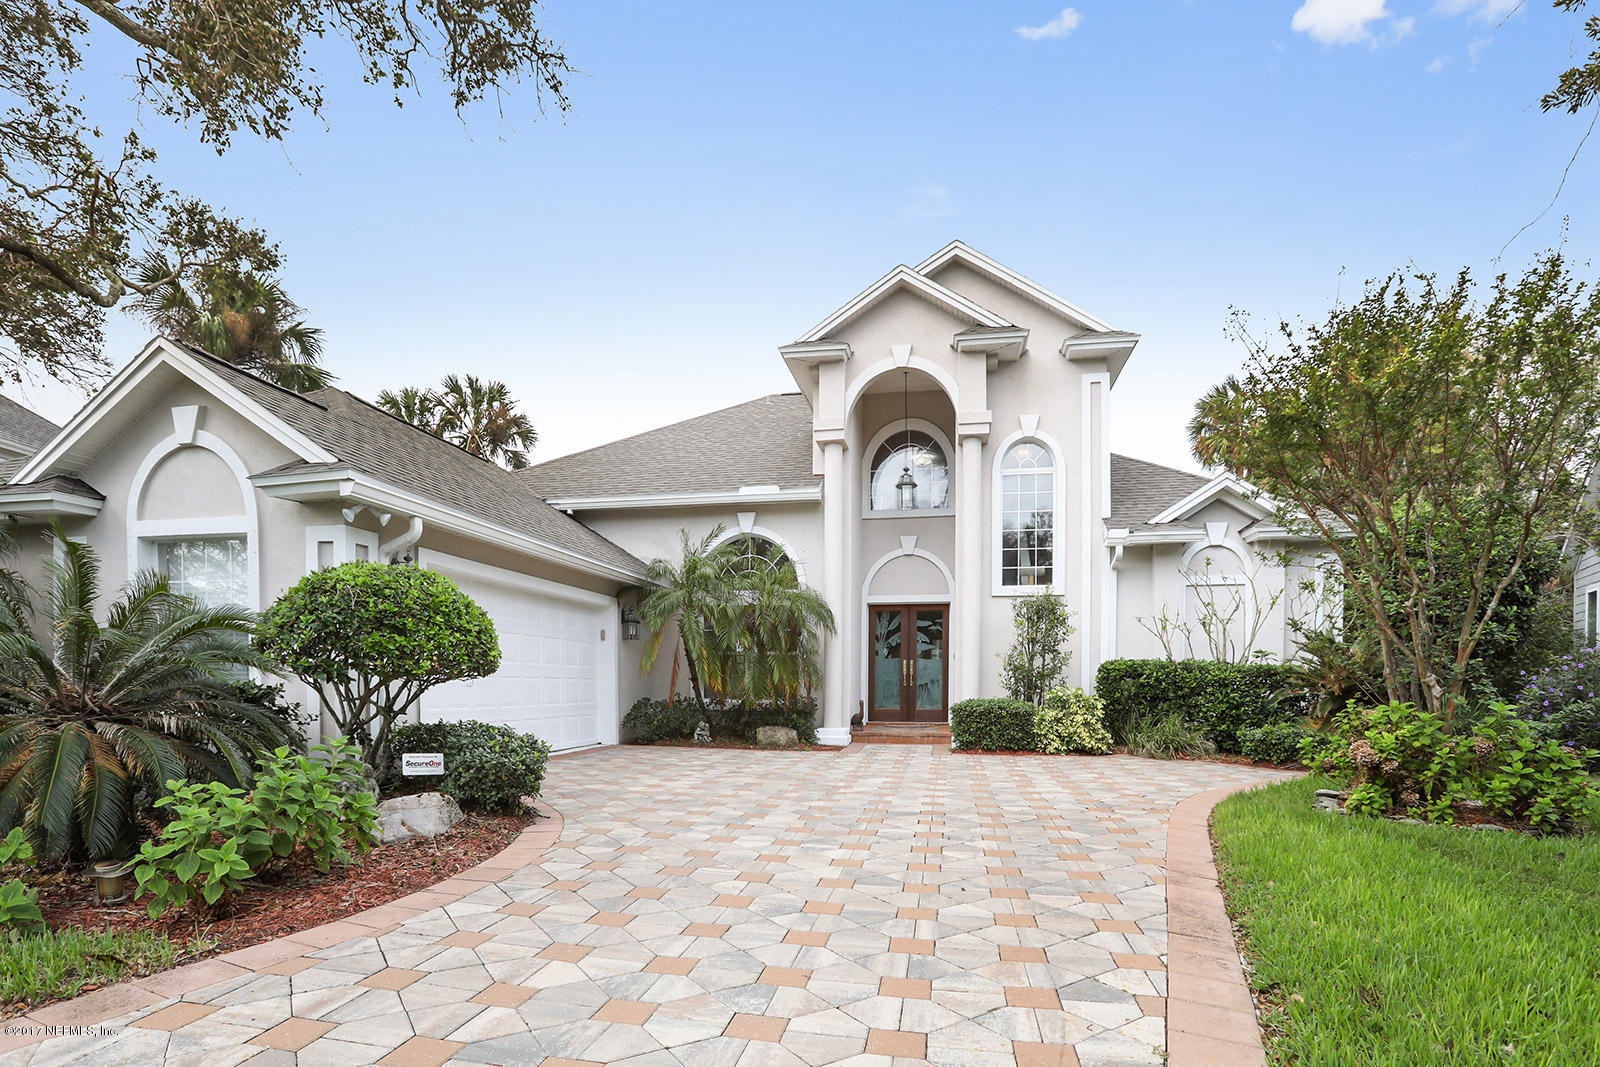 113 OLD PONTE VEDRA, PONTE VEDRA BEACH, FLORIDA 32082, 4 Bedrooms Bedrooms, ,3 BathroomsBathrooms,Residential - single family,For sale,OLD PONTE VEDRA,906546